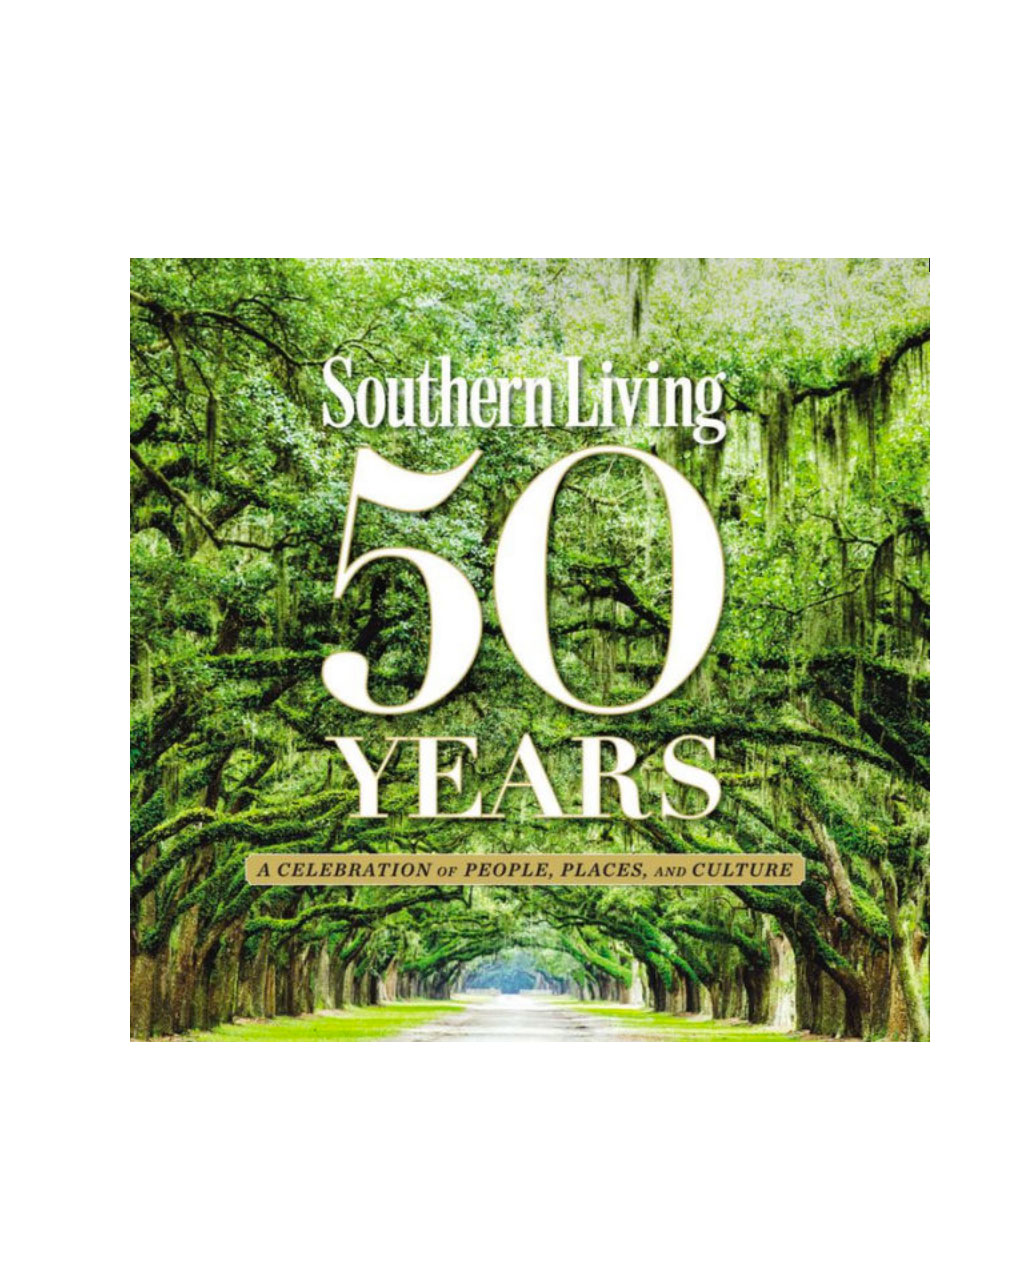 Southern Living 50 Years: A Celebration of People, Places, and Culture, by Valerie Frasier Luesse and The Editors of Southern Living